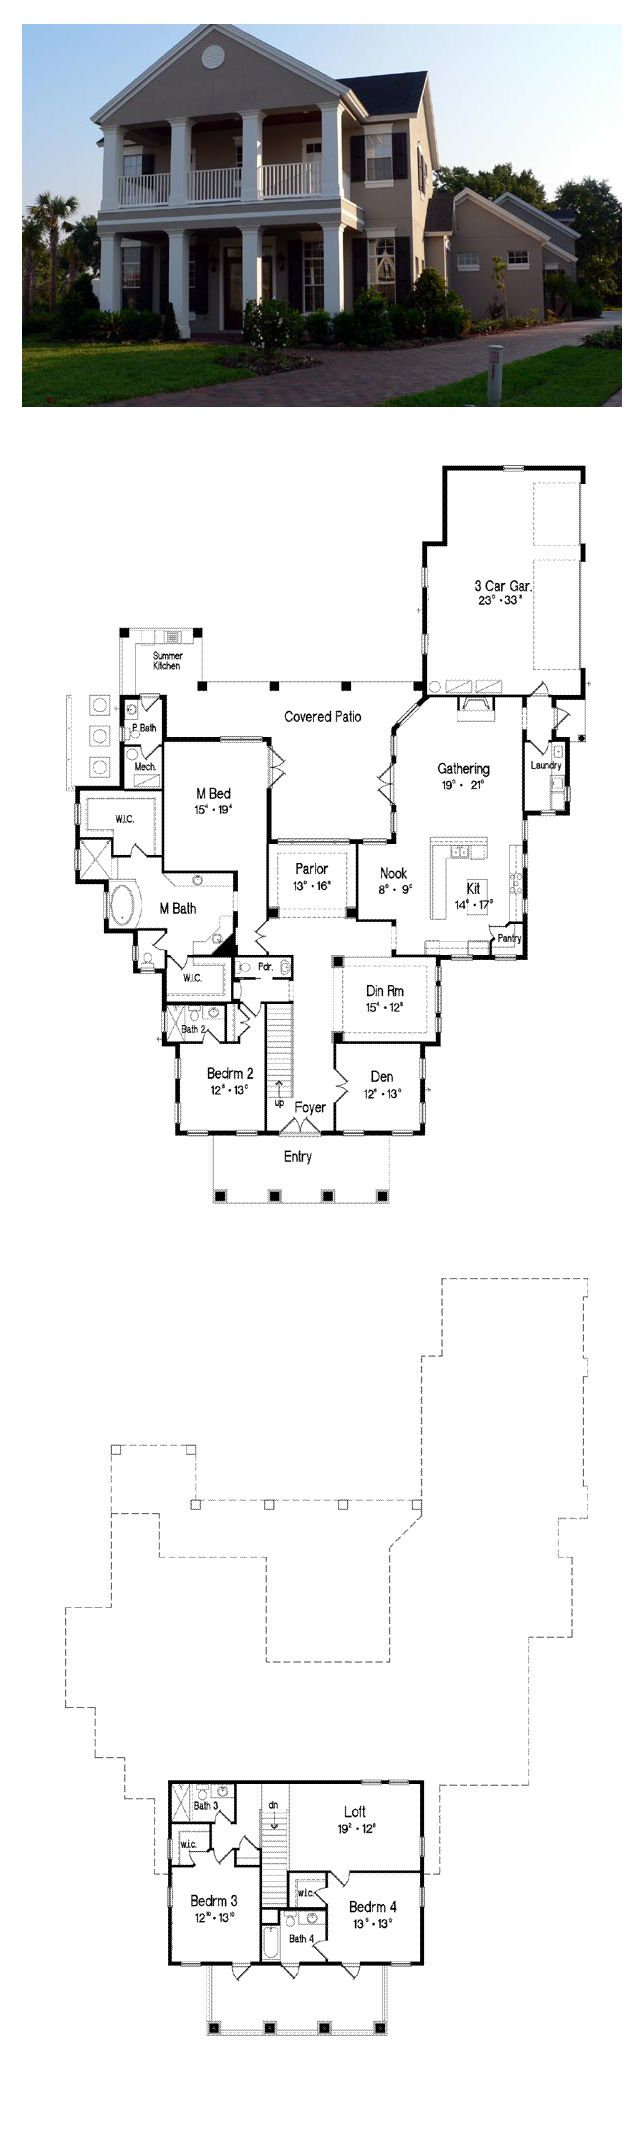 Best 25 plantation floor plans ideas on pinterest for Plantation floor plan